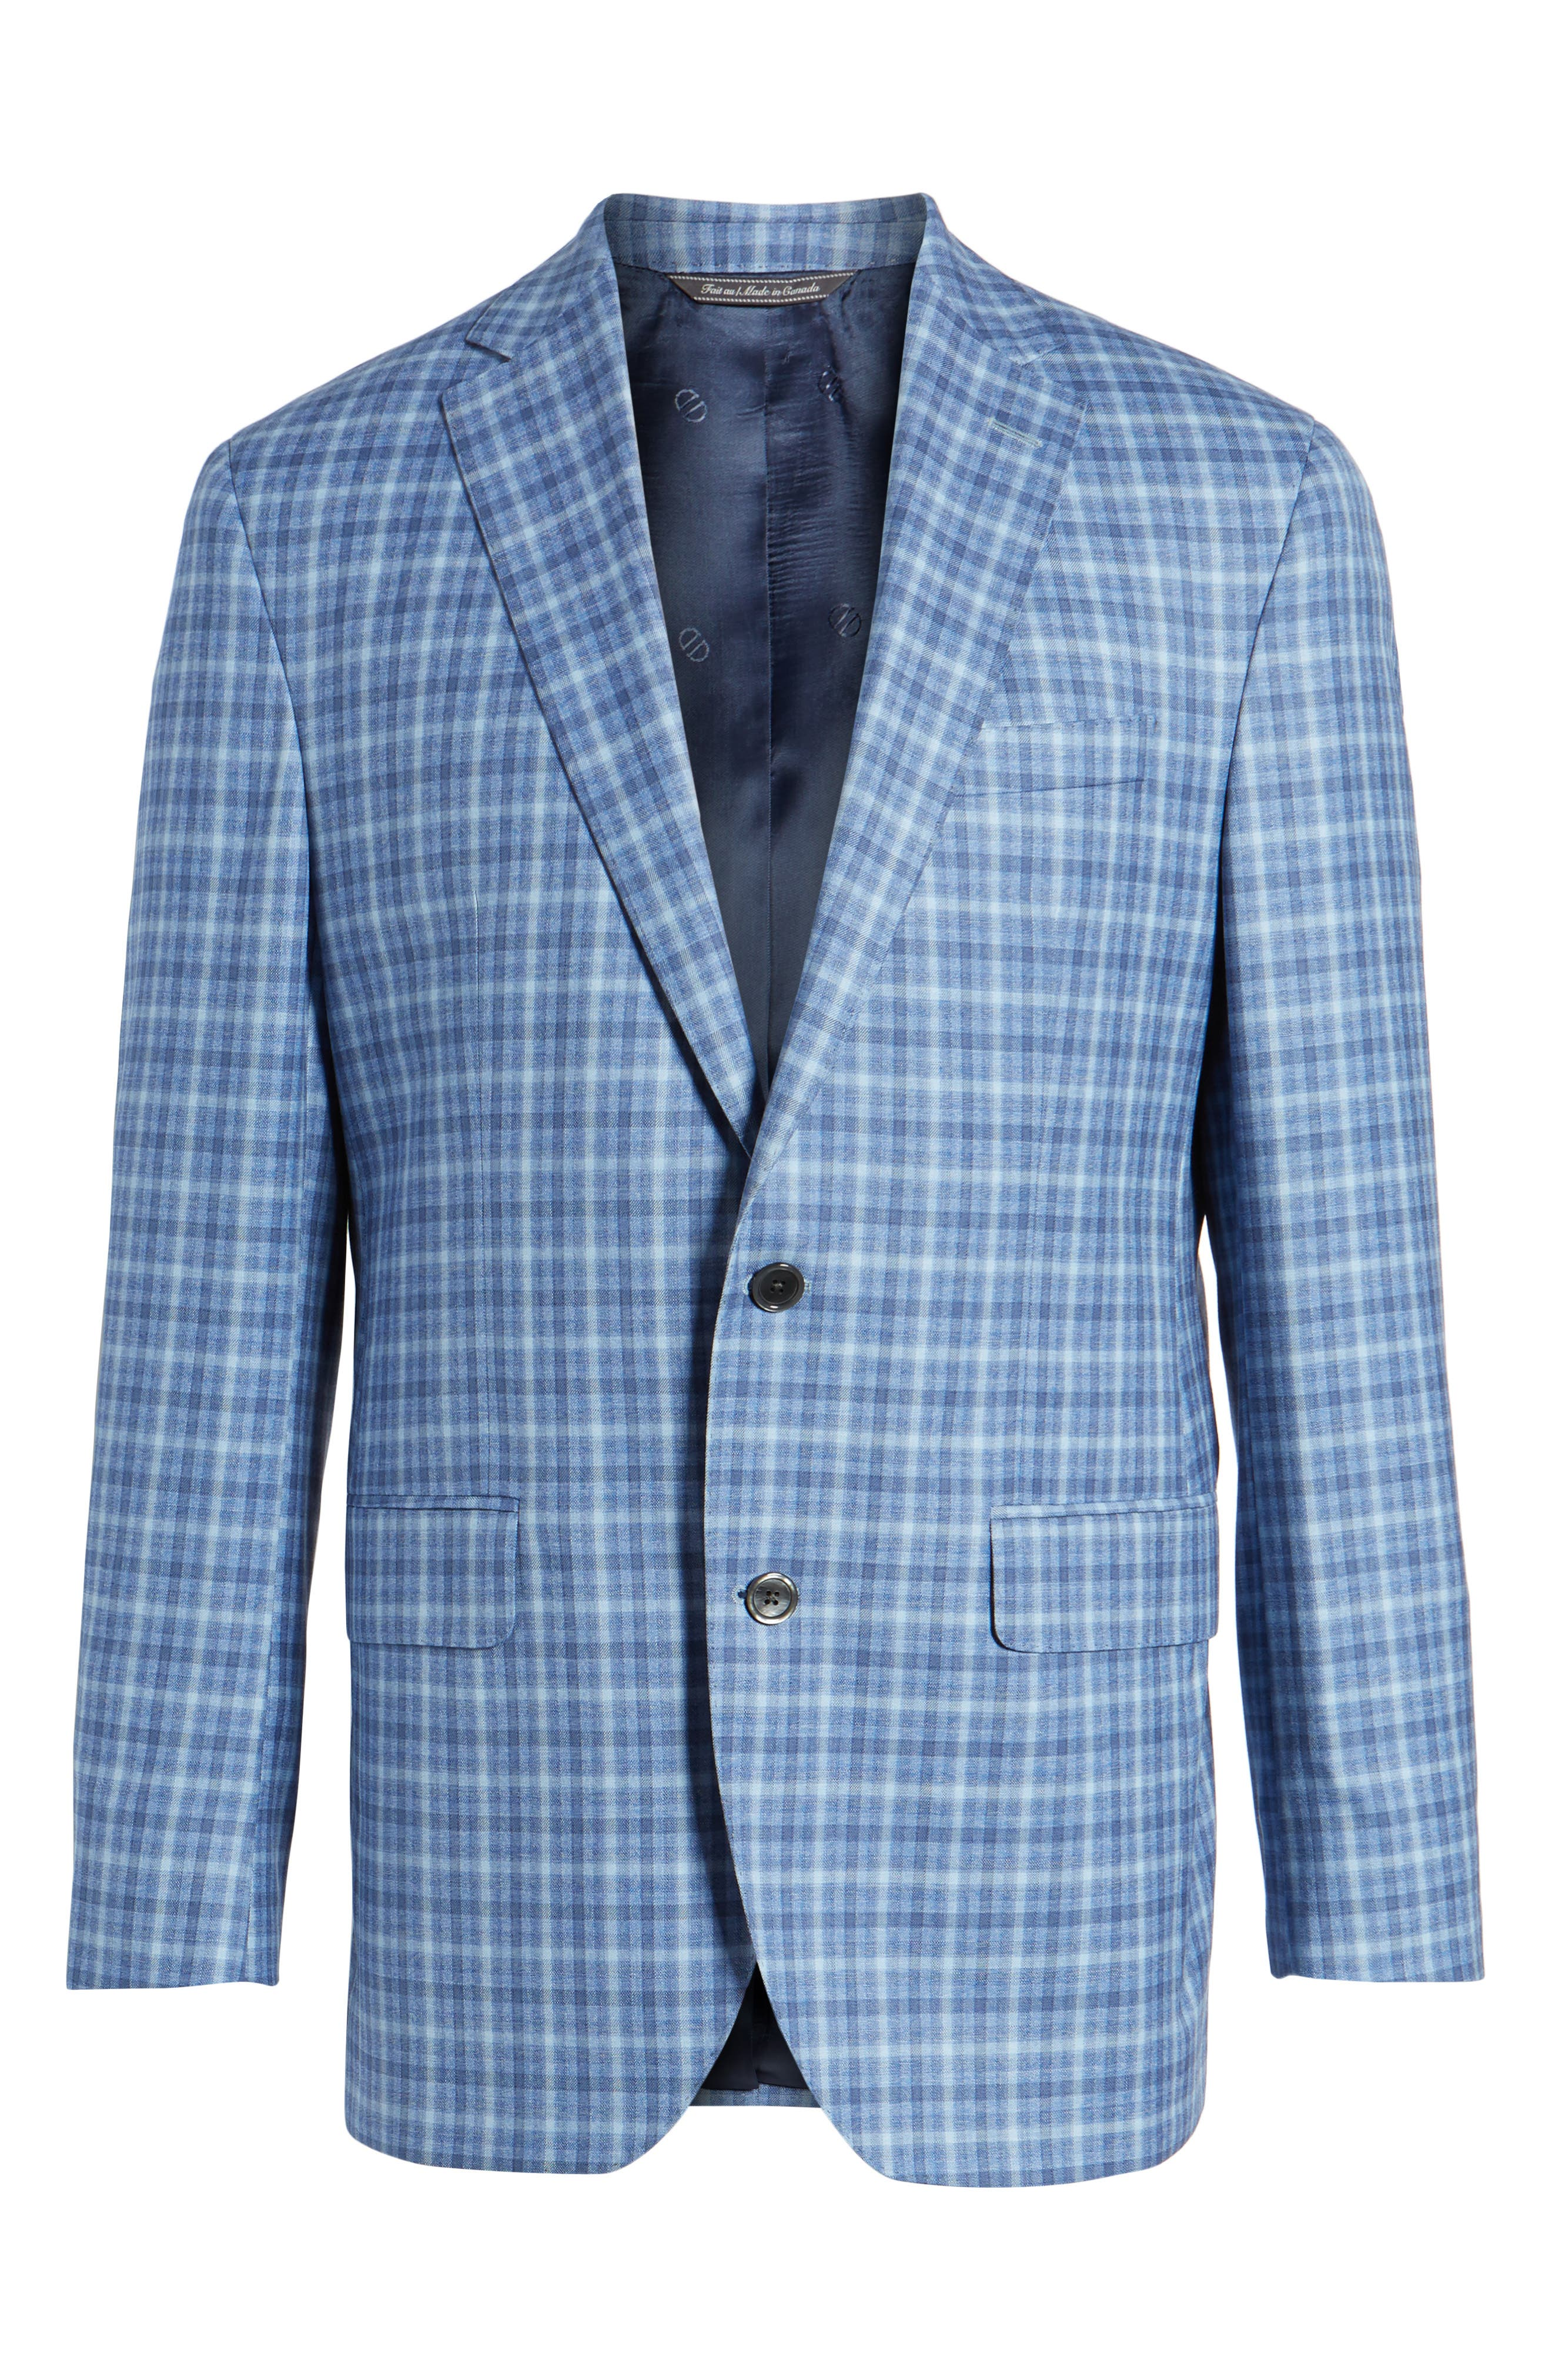 Arnold Classic Fit Plaid Wool Sport Coat,                             Alternate thumbnail 5, color,                             400